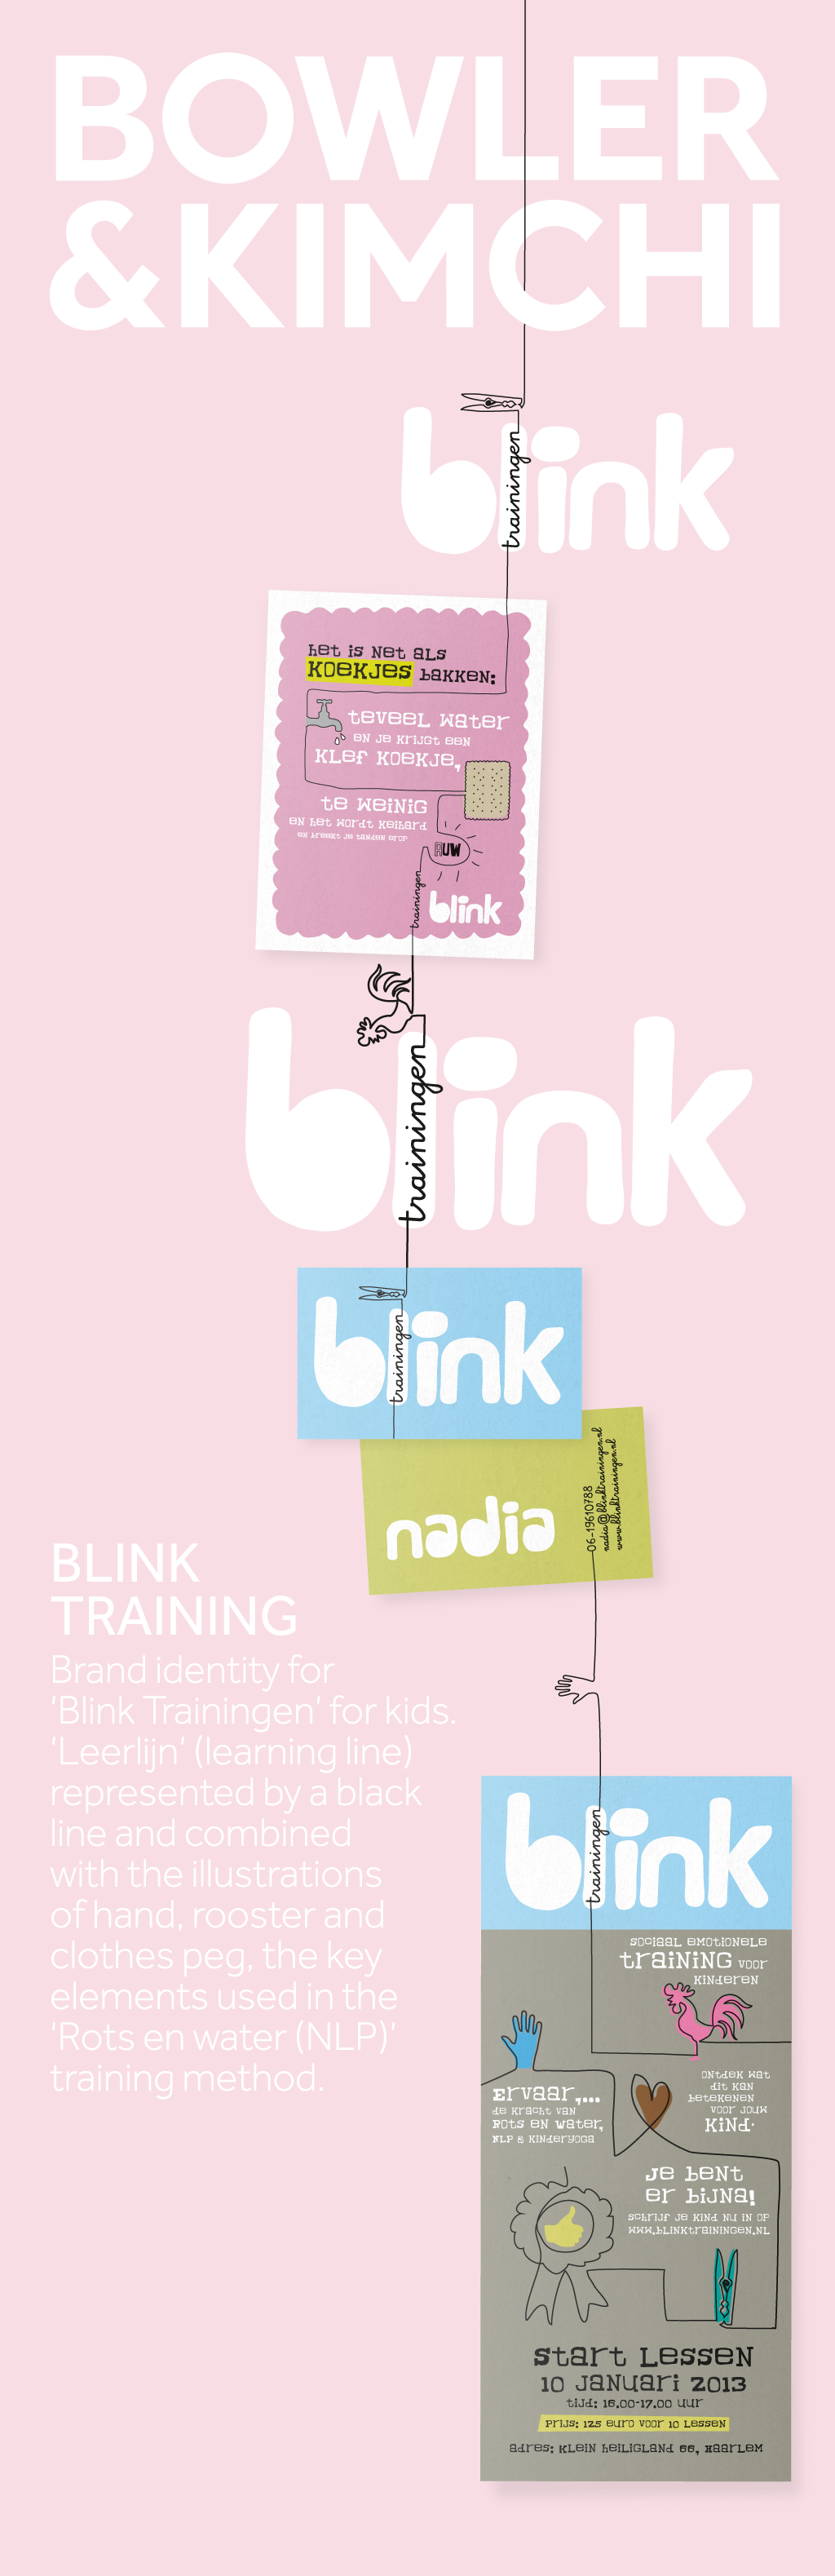 Brand Identity Blink Trainingen